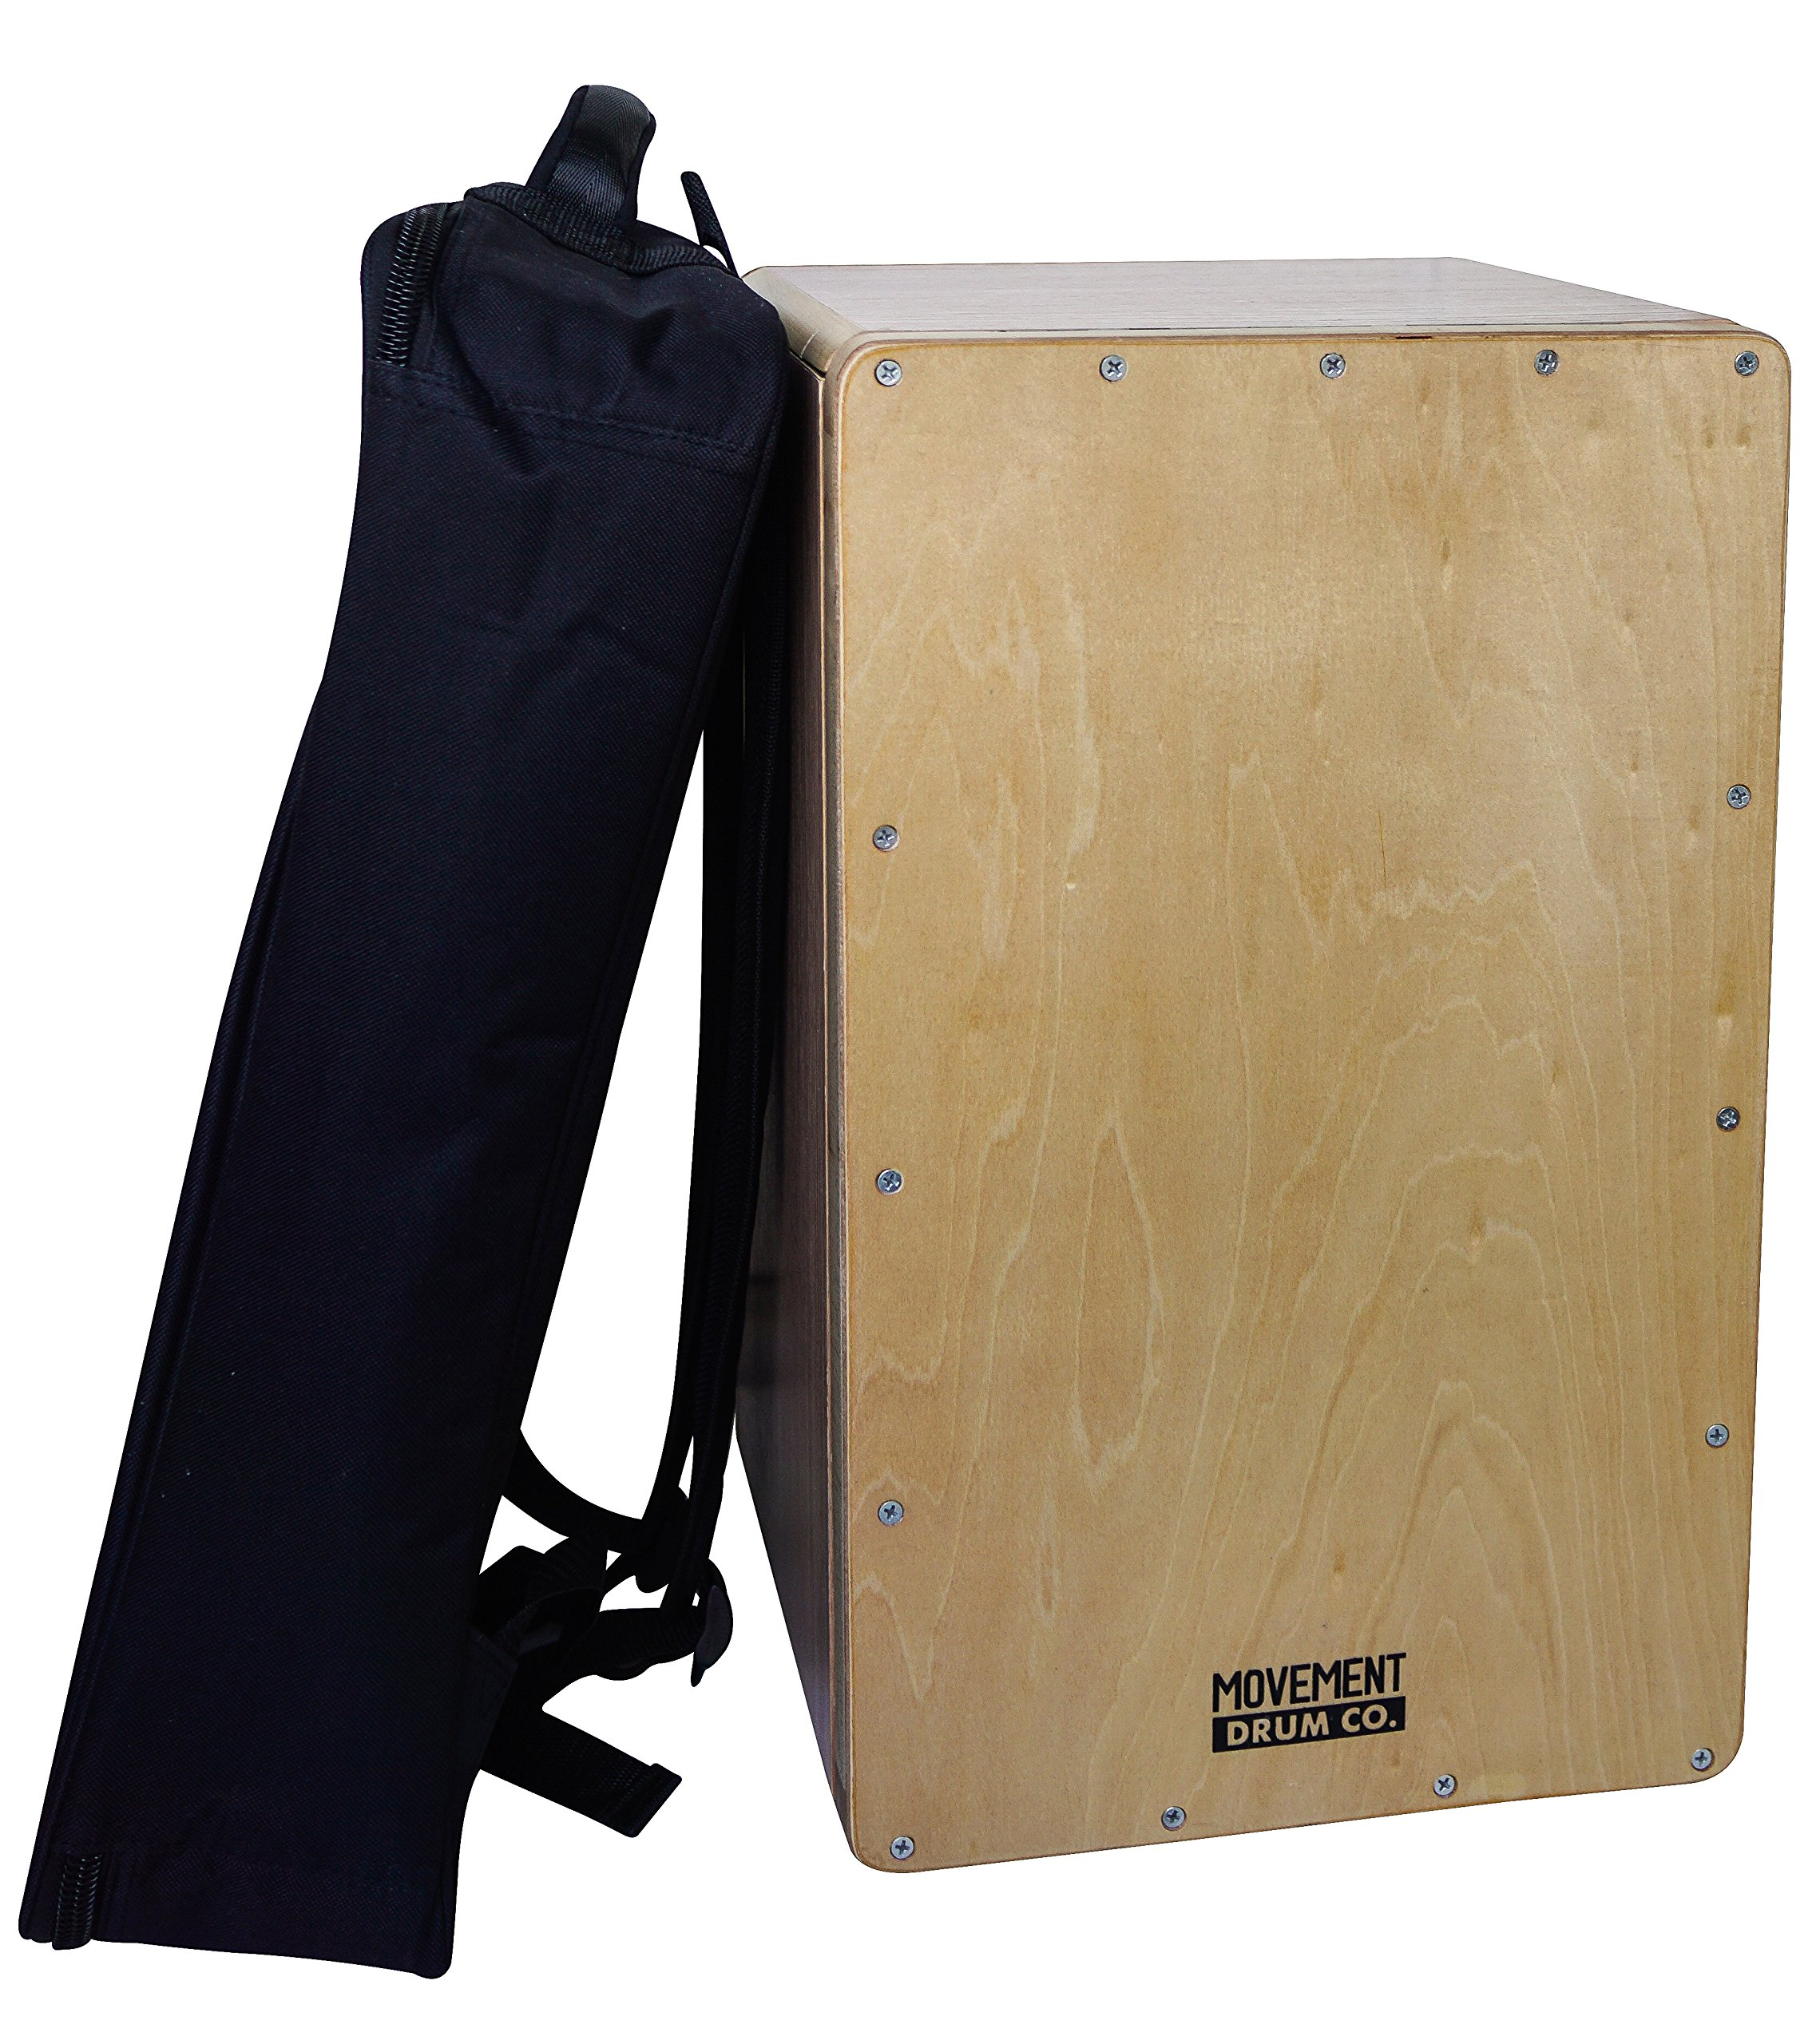 The Collapsible Cajon With Traveler Backpack